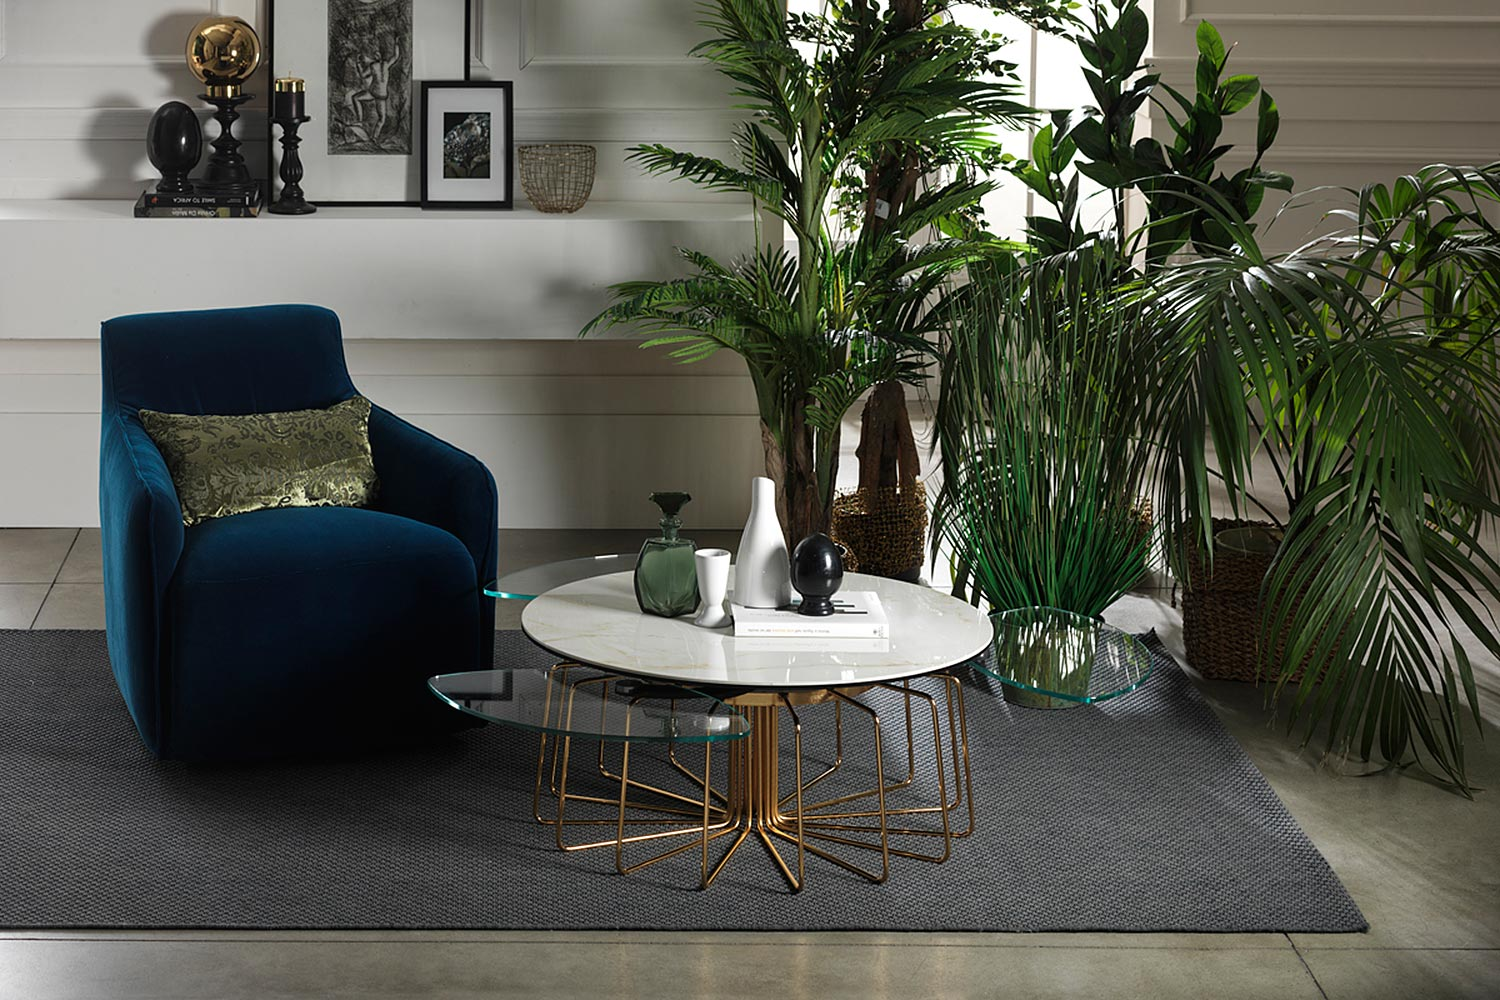 Naos Products for Your Home to Obsess Over